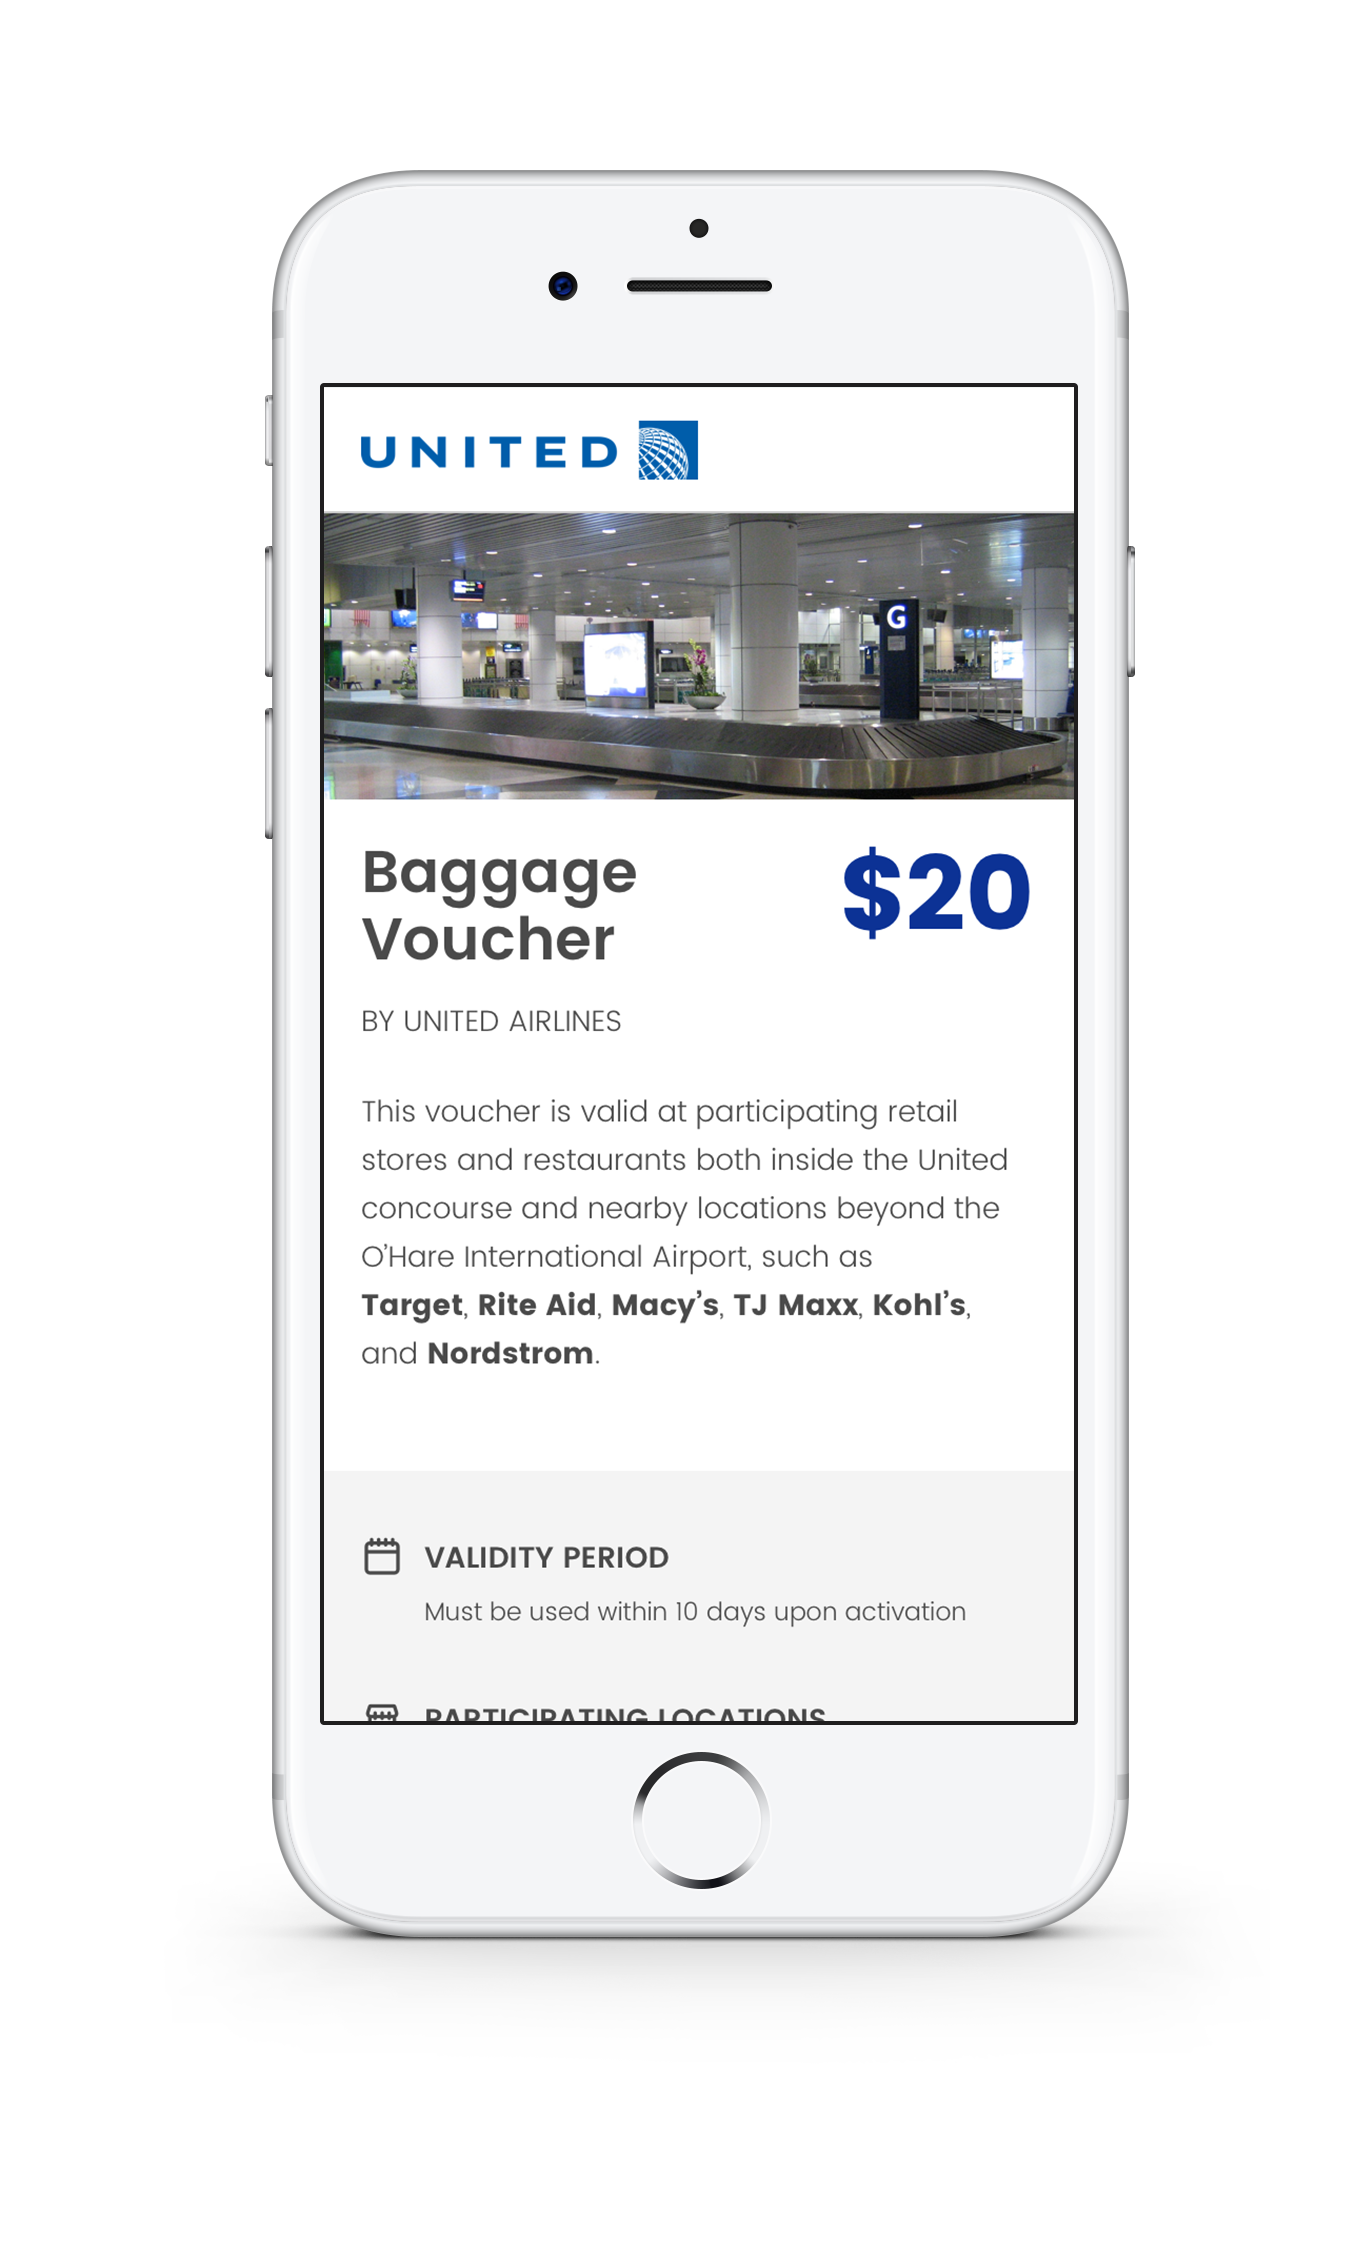 United Digital Baggage Voucher